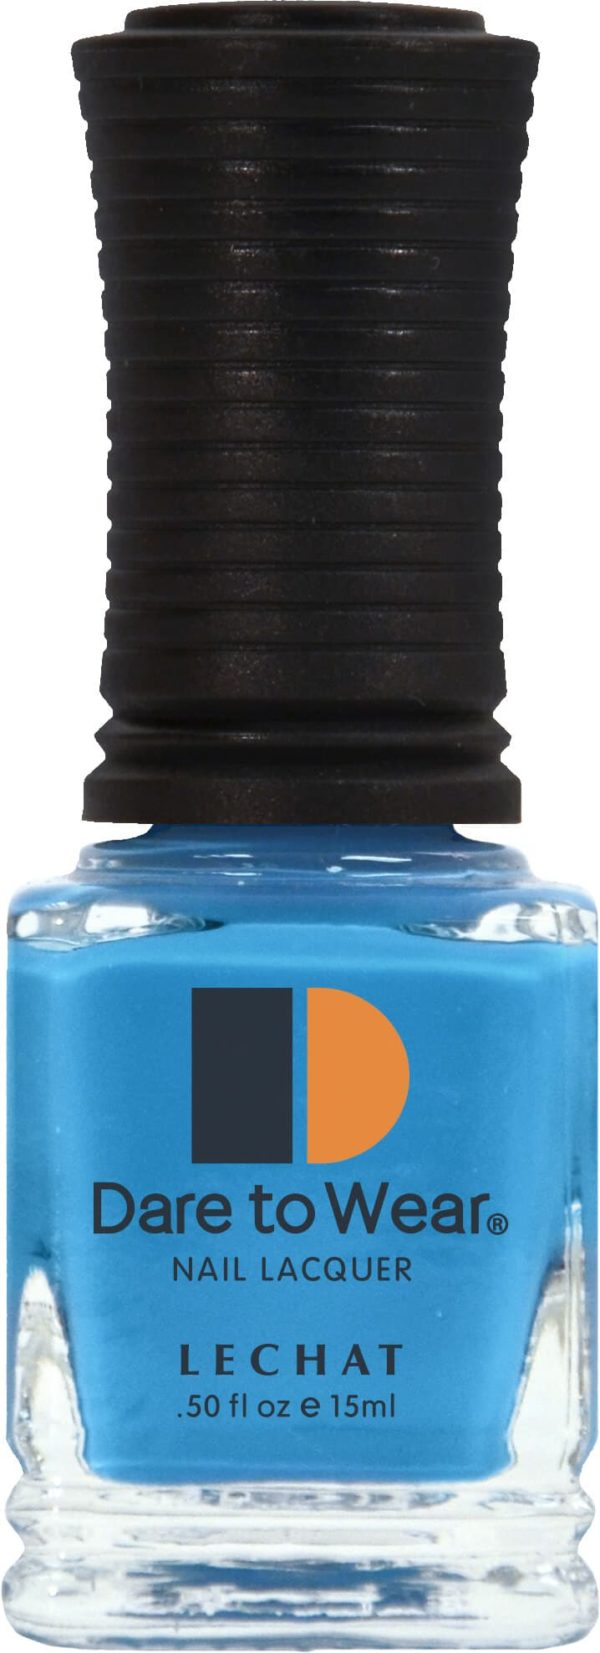 half fluid ounce bottle of blue Dare to Wear lacquer.